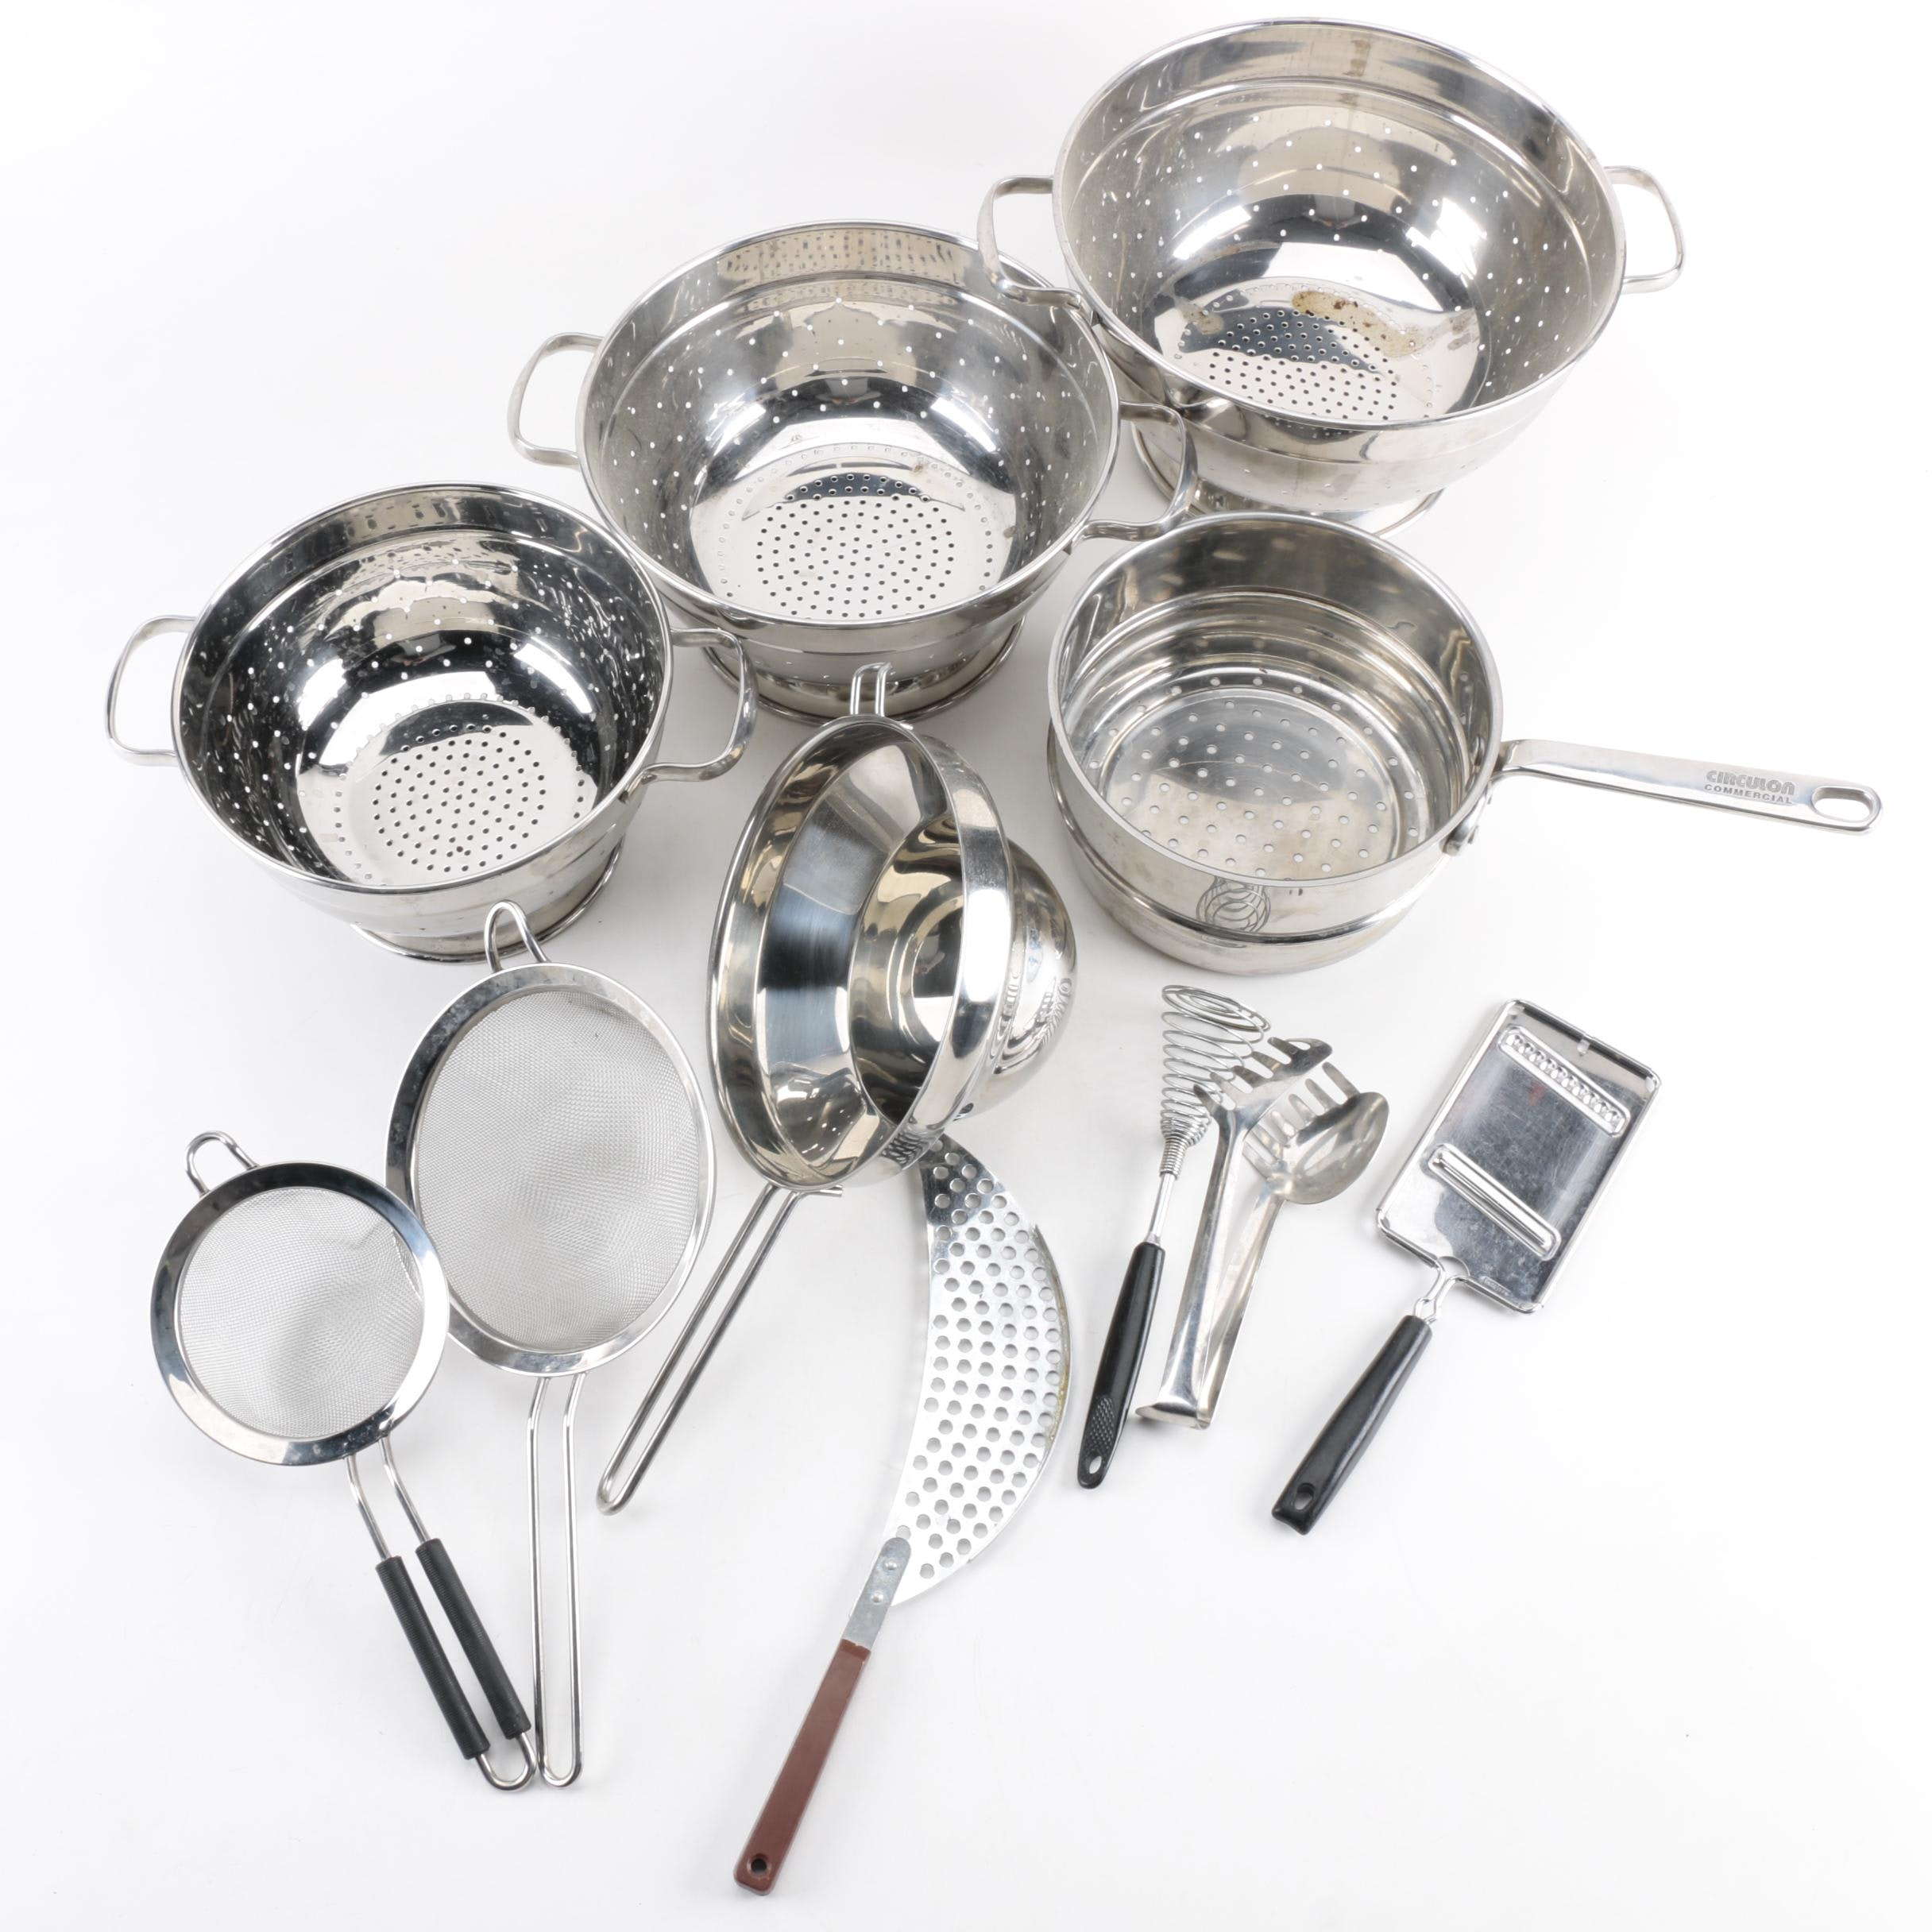 Assorted Cookware Featuring Circulon